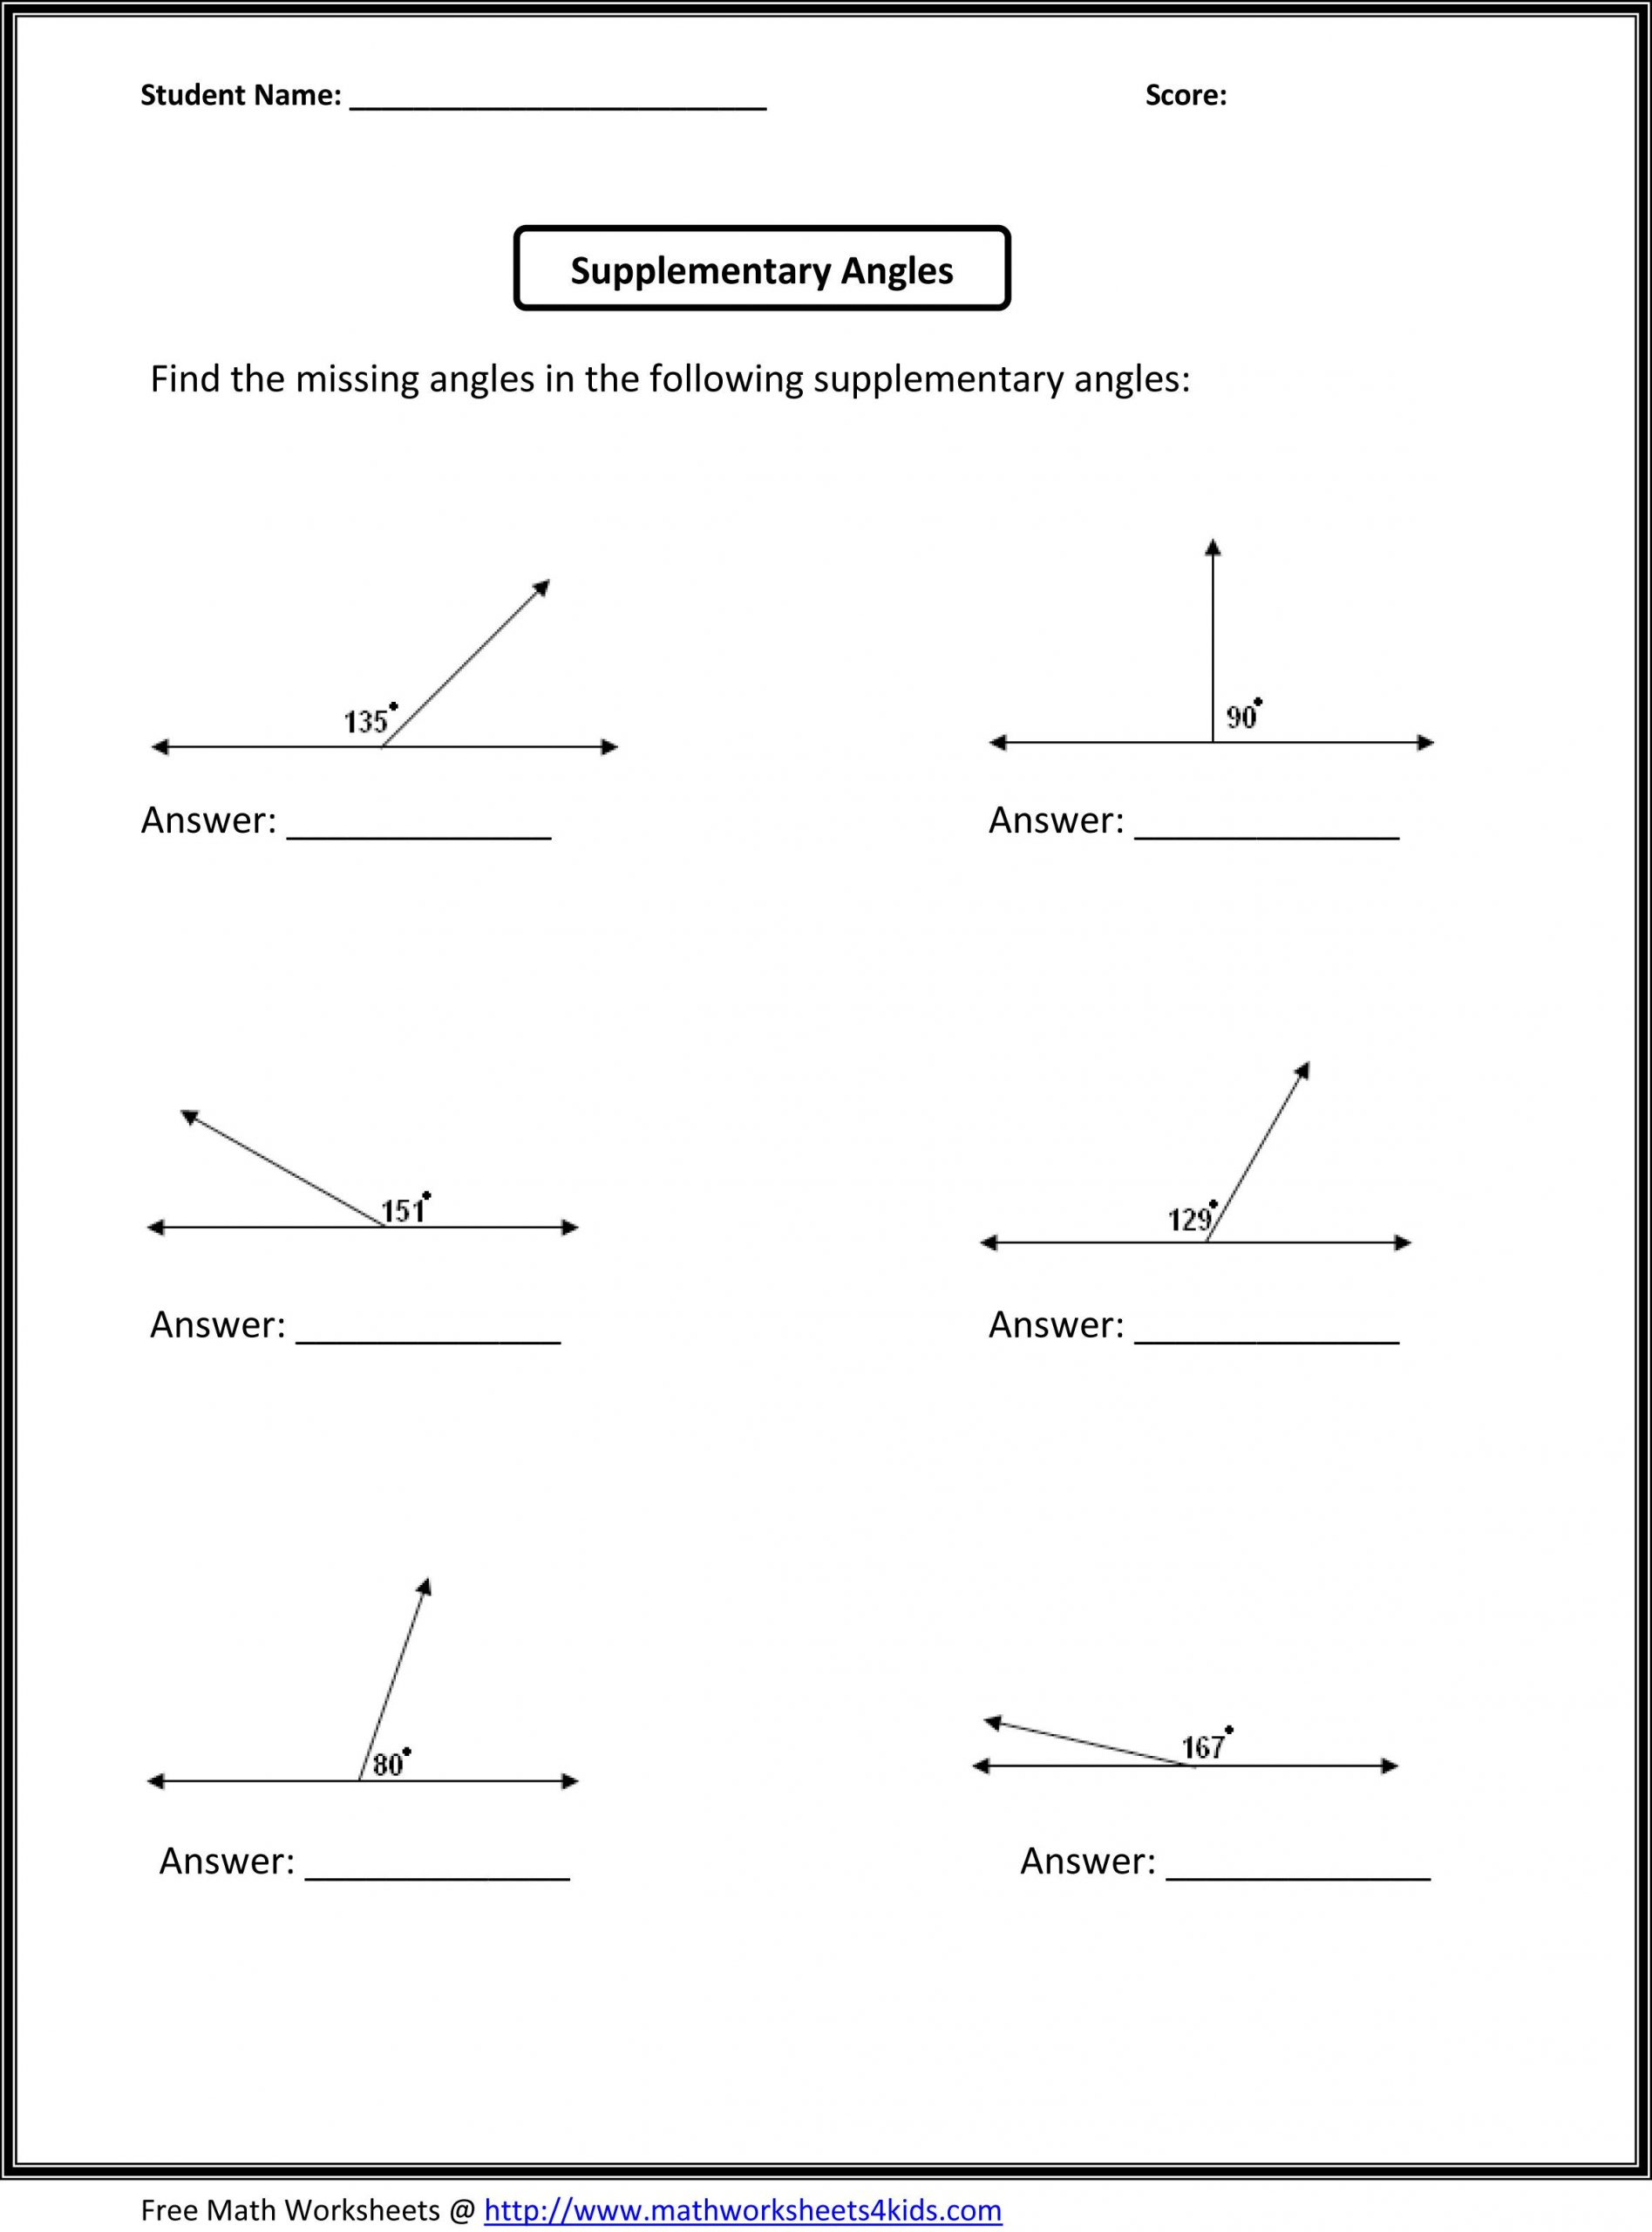 6th Grade Geometry Worksheets Supplementary Angles